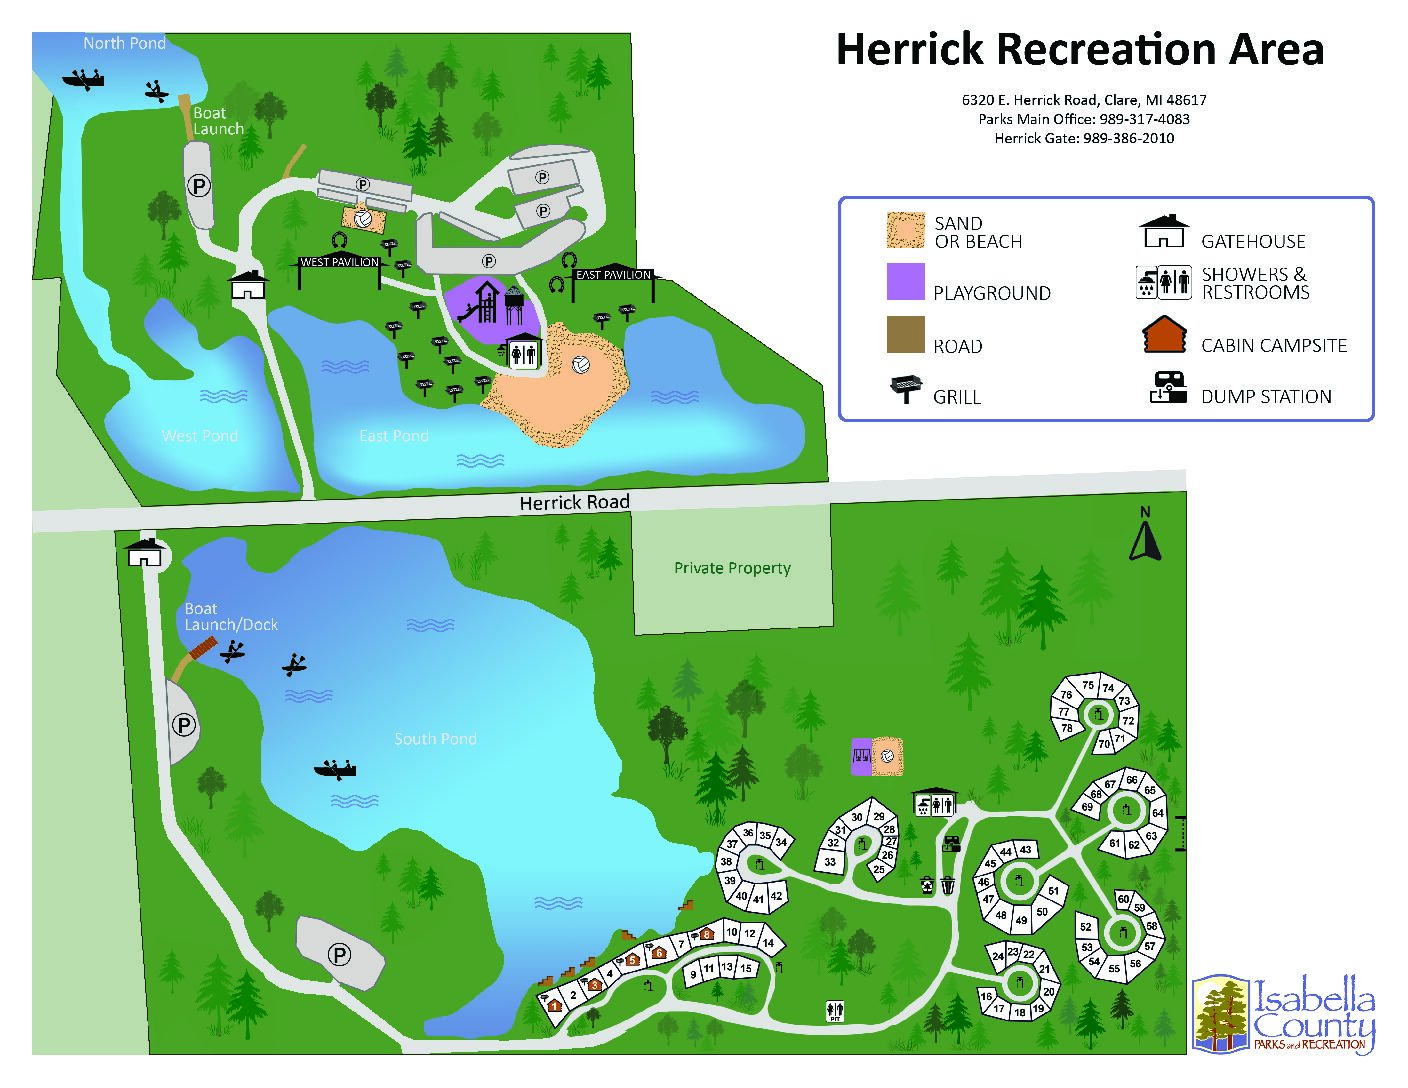 preview image of first page Herrick Recreation Area Site Park Map